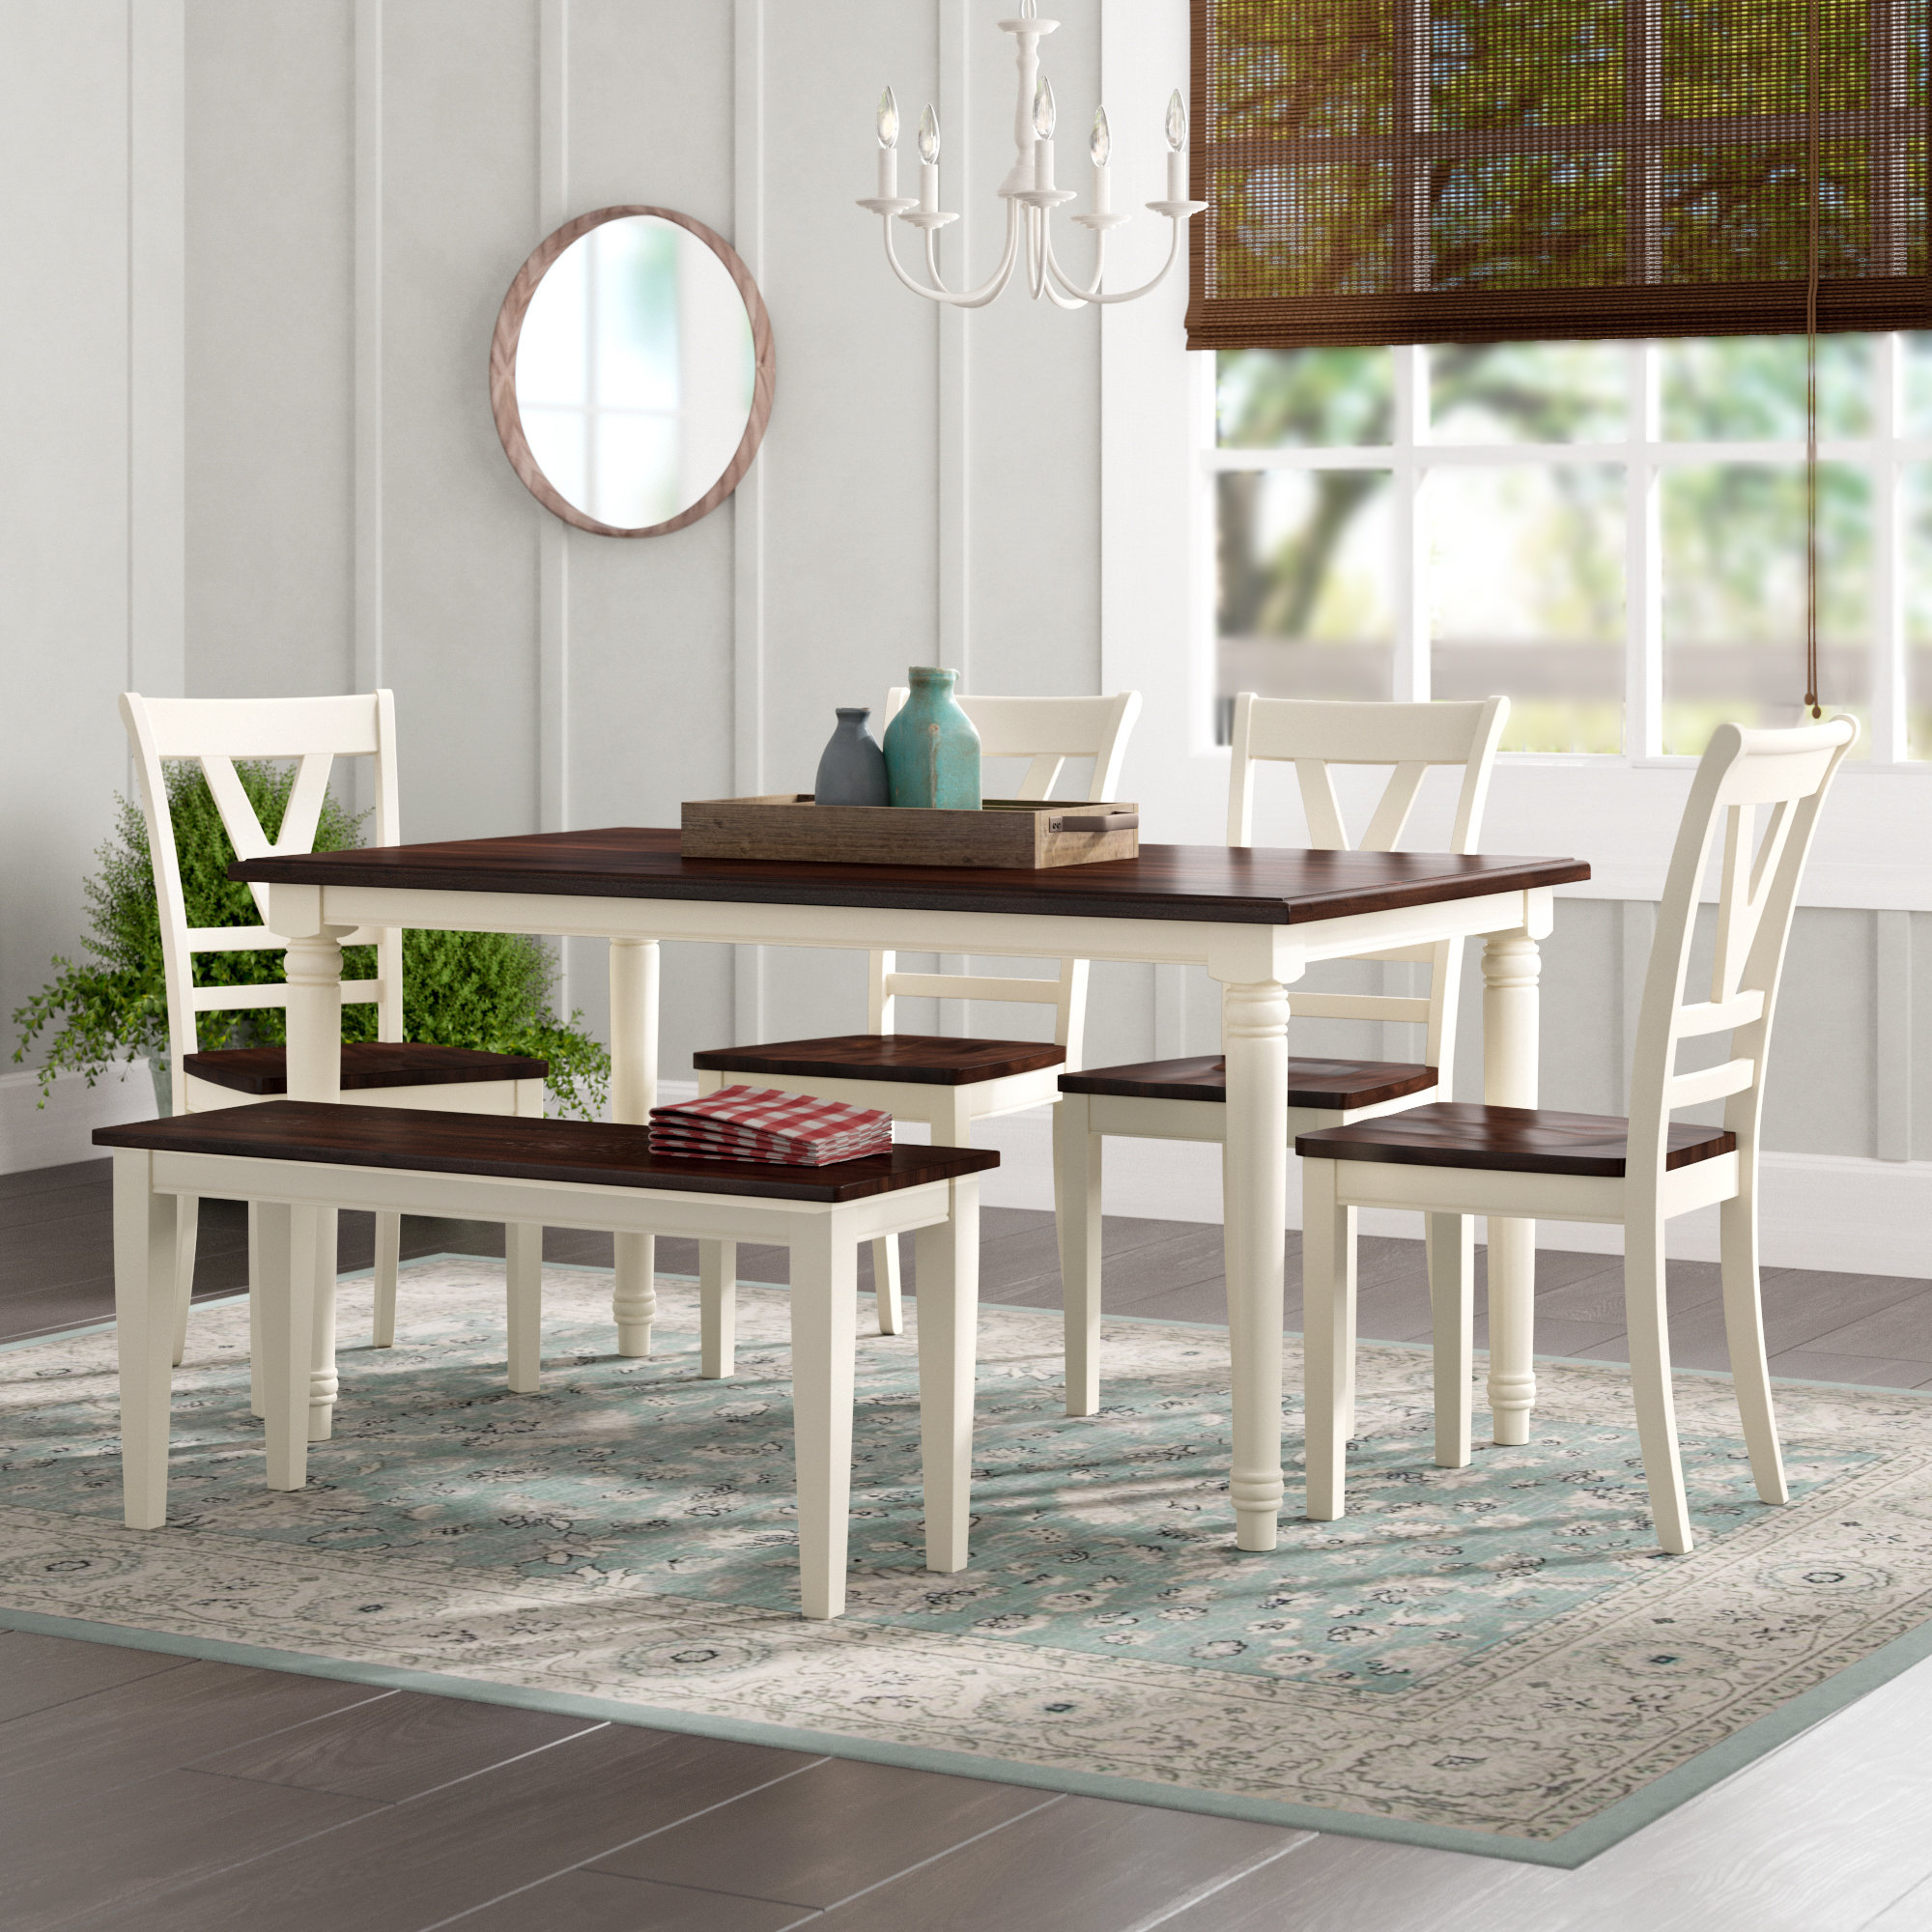 Patridge 6 Piece Solid Wood Dining Set Inside Most Up To Date Yedinak 5 Piece Solid Wood Dining Sets (Photo 8 of 20)